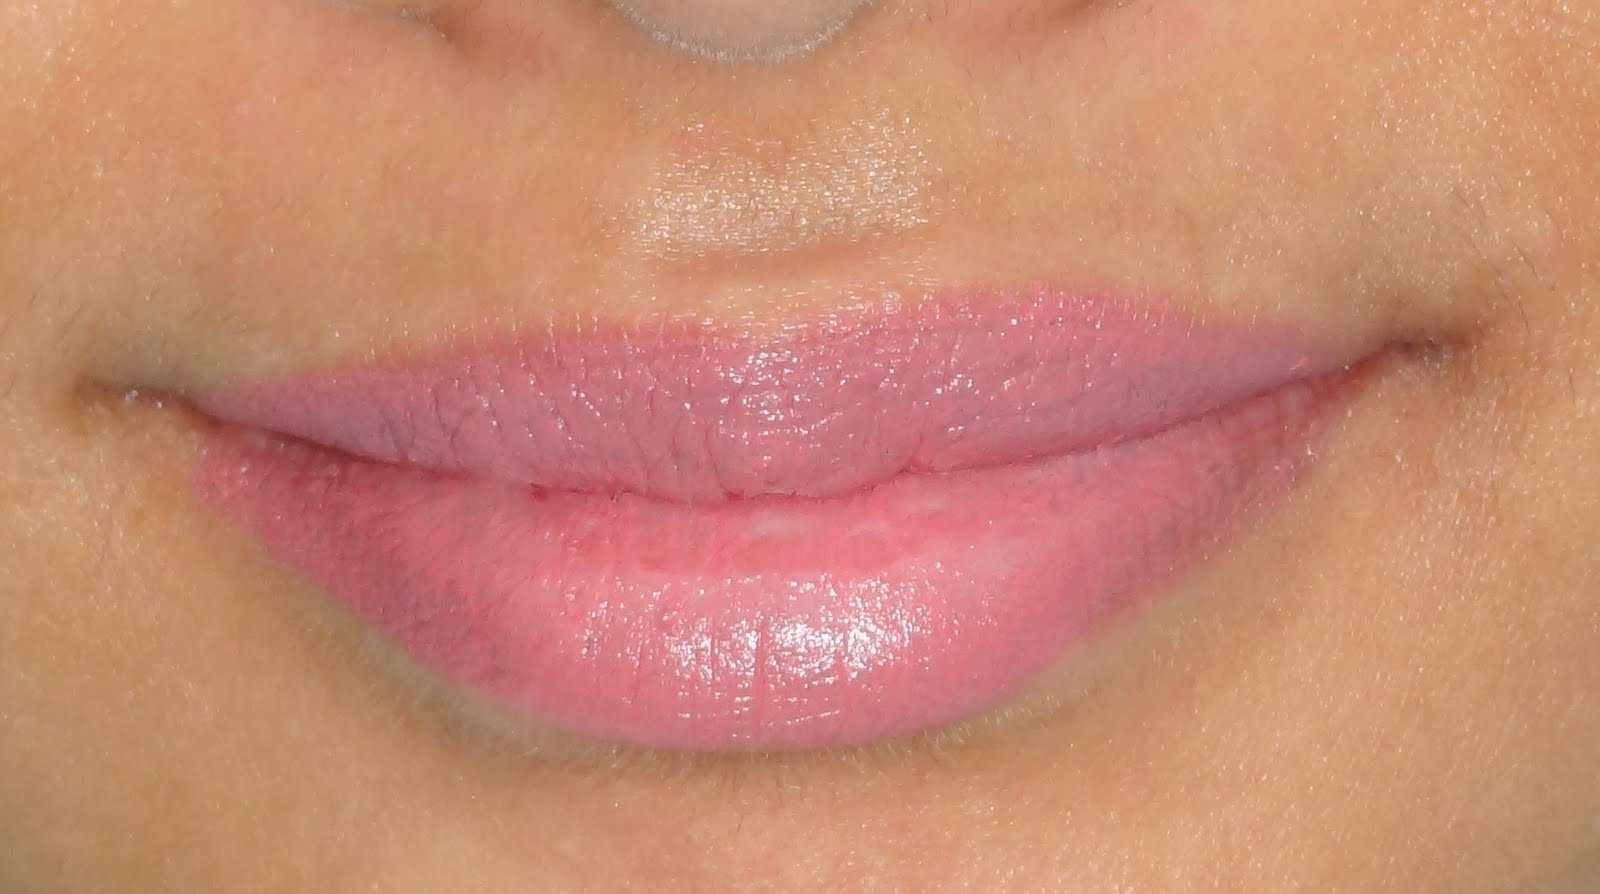 Bobbi Brown Sandwash Pink Lipstick Review hd image